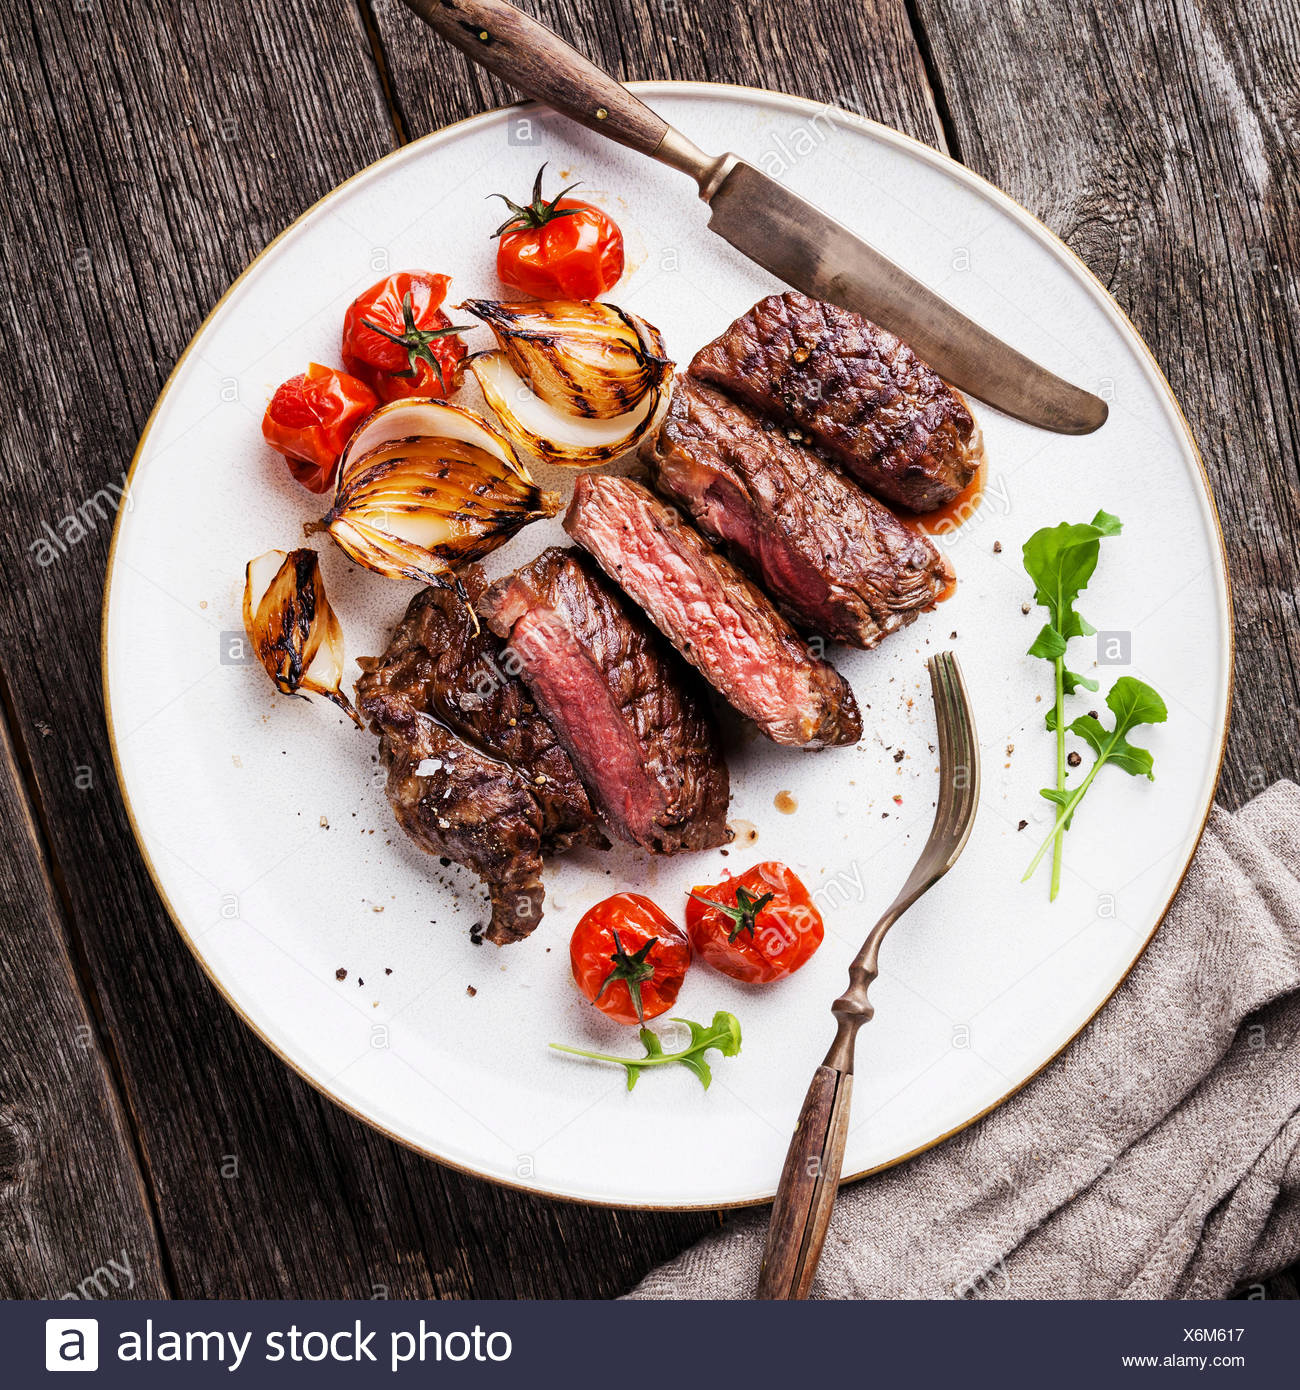 Sliced Medium Rare Grilled Beef Steak Ribeye With Grilled Onions And Cherry Tomatoes On Plate On Wooden Background Stock Photo Alamy